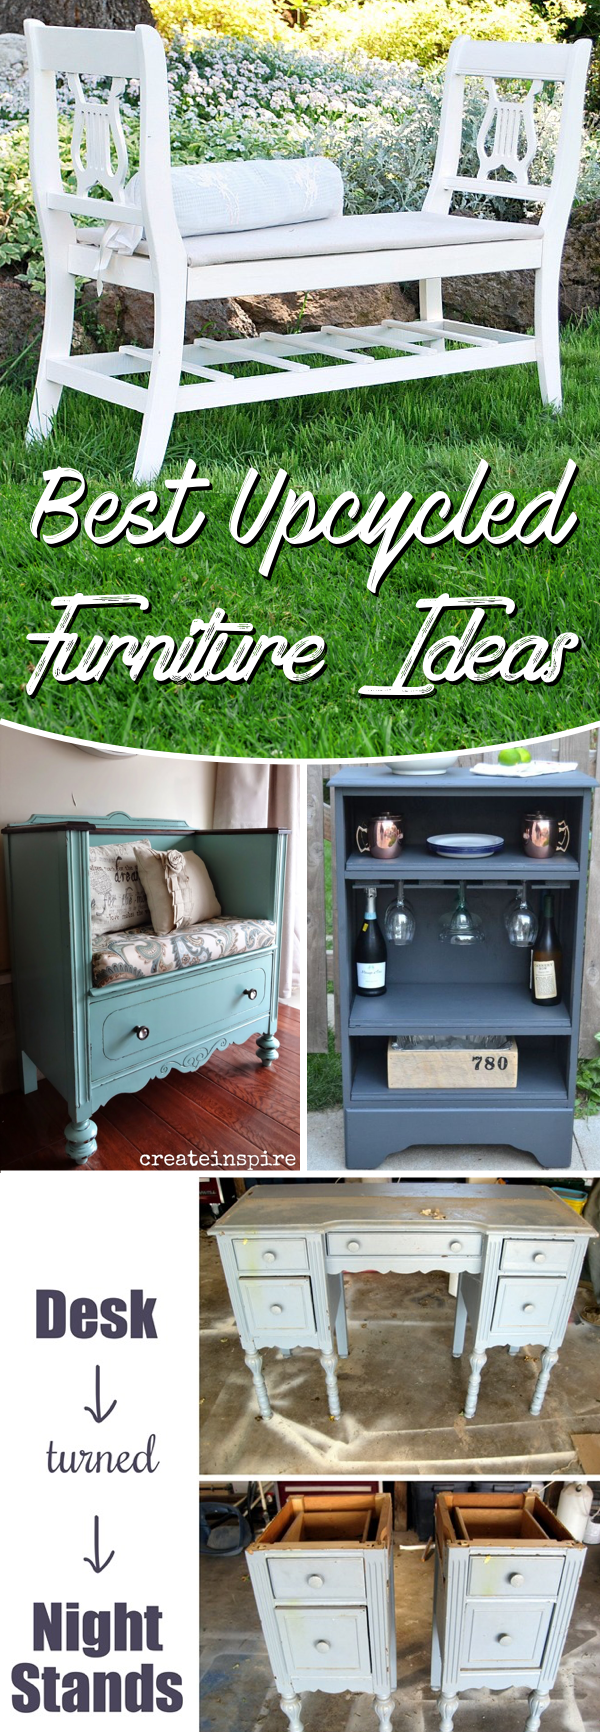 20 Upcycled Furniture Ideas Breathing New Life Into An Exhausted Piece Of Furniture